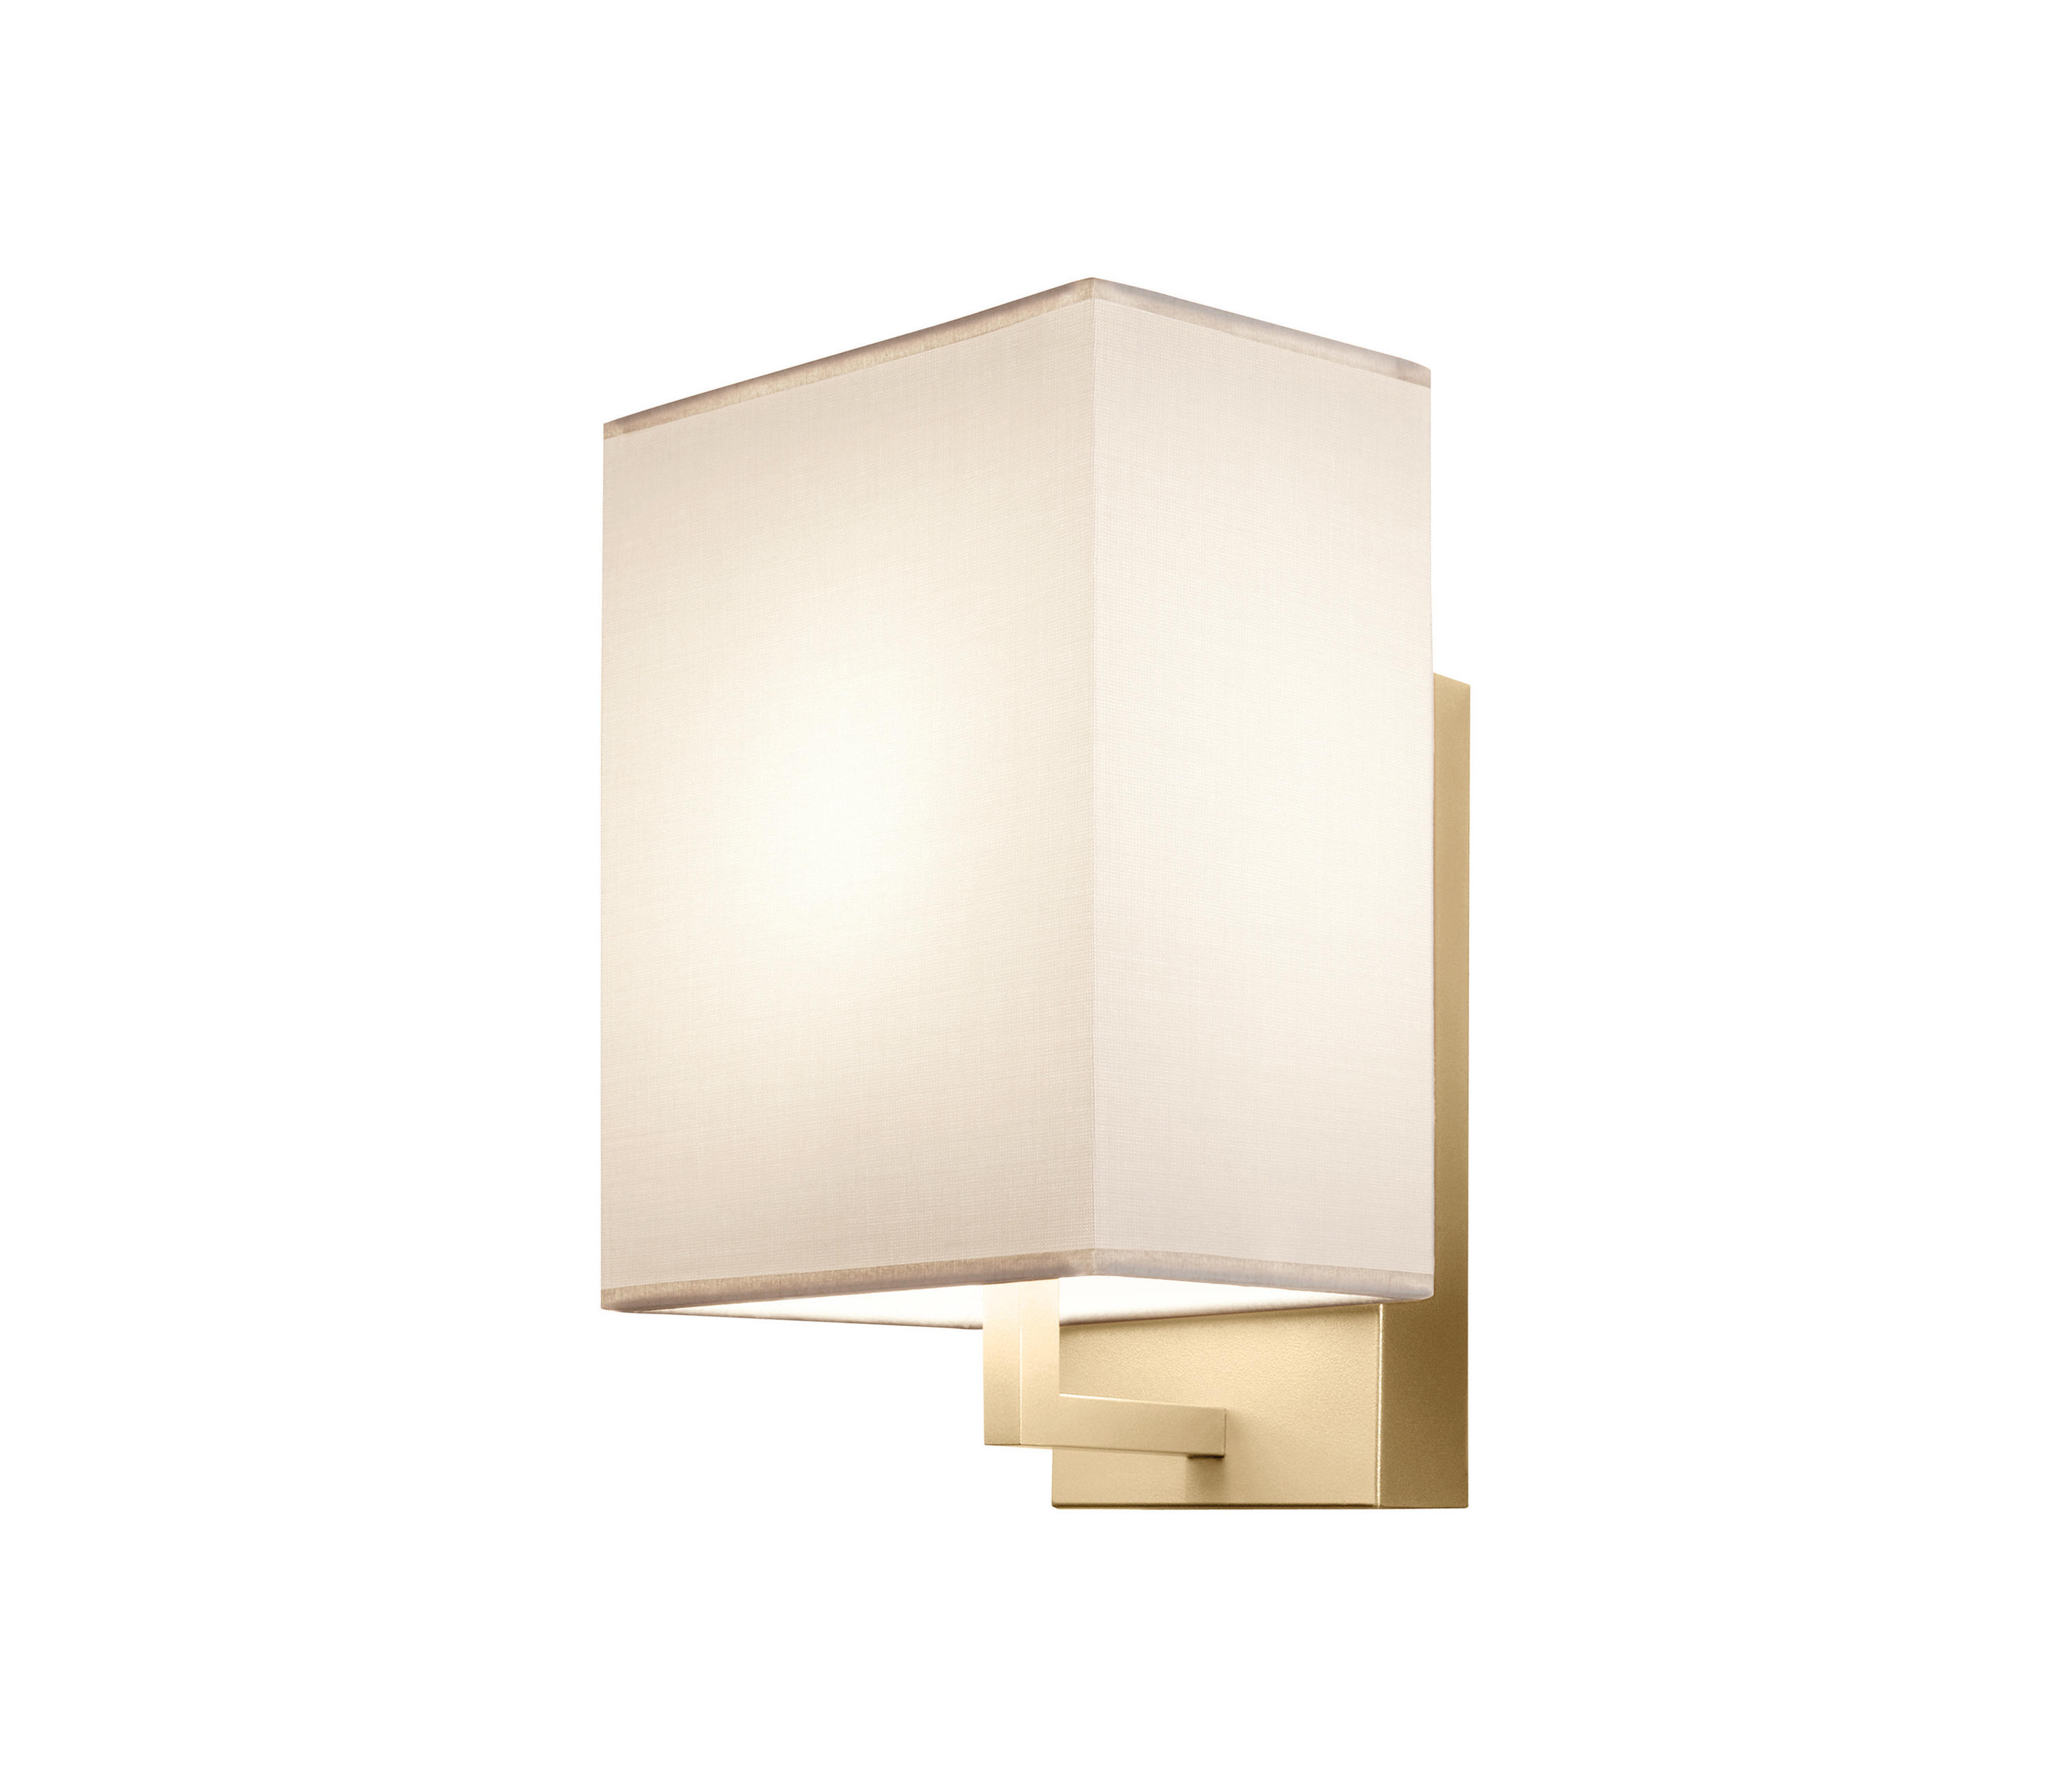 Turin wall lamp general lighting from carpyen architonic for Apliques de luz para escaleras